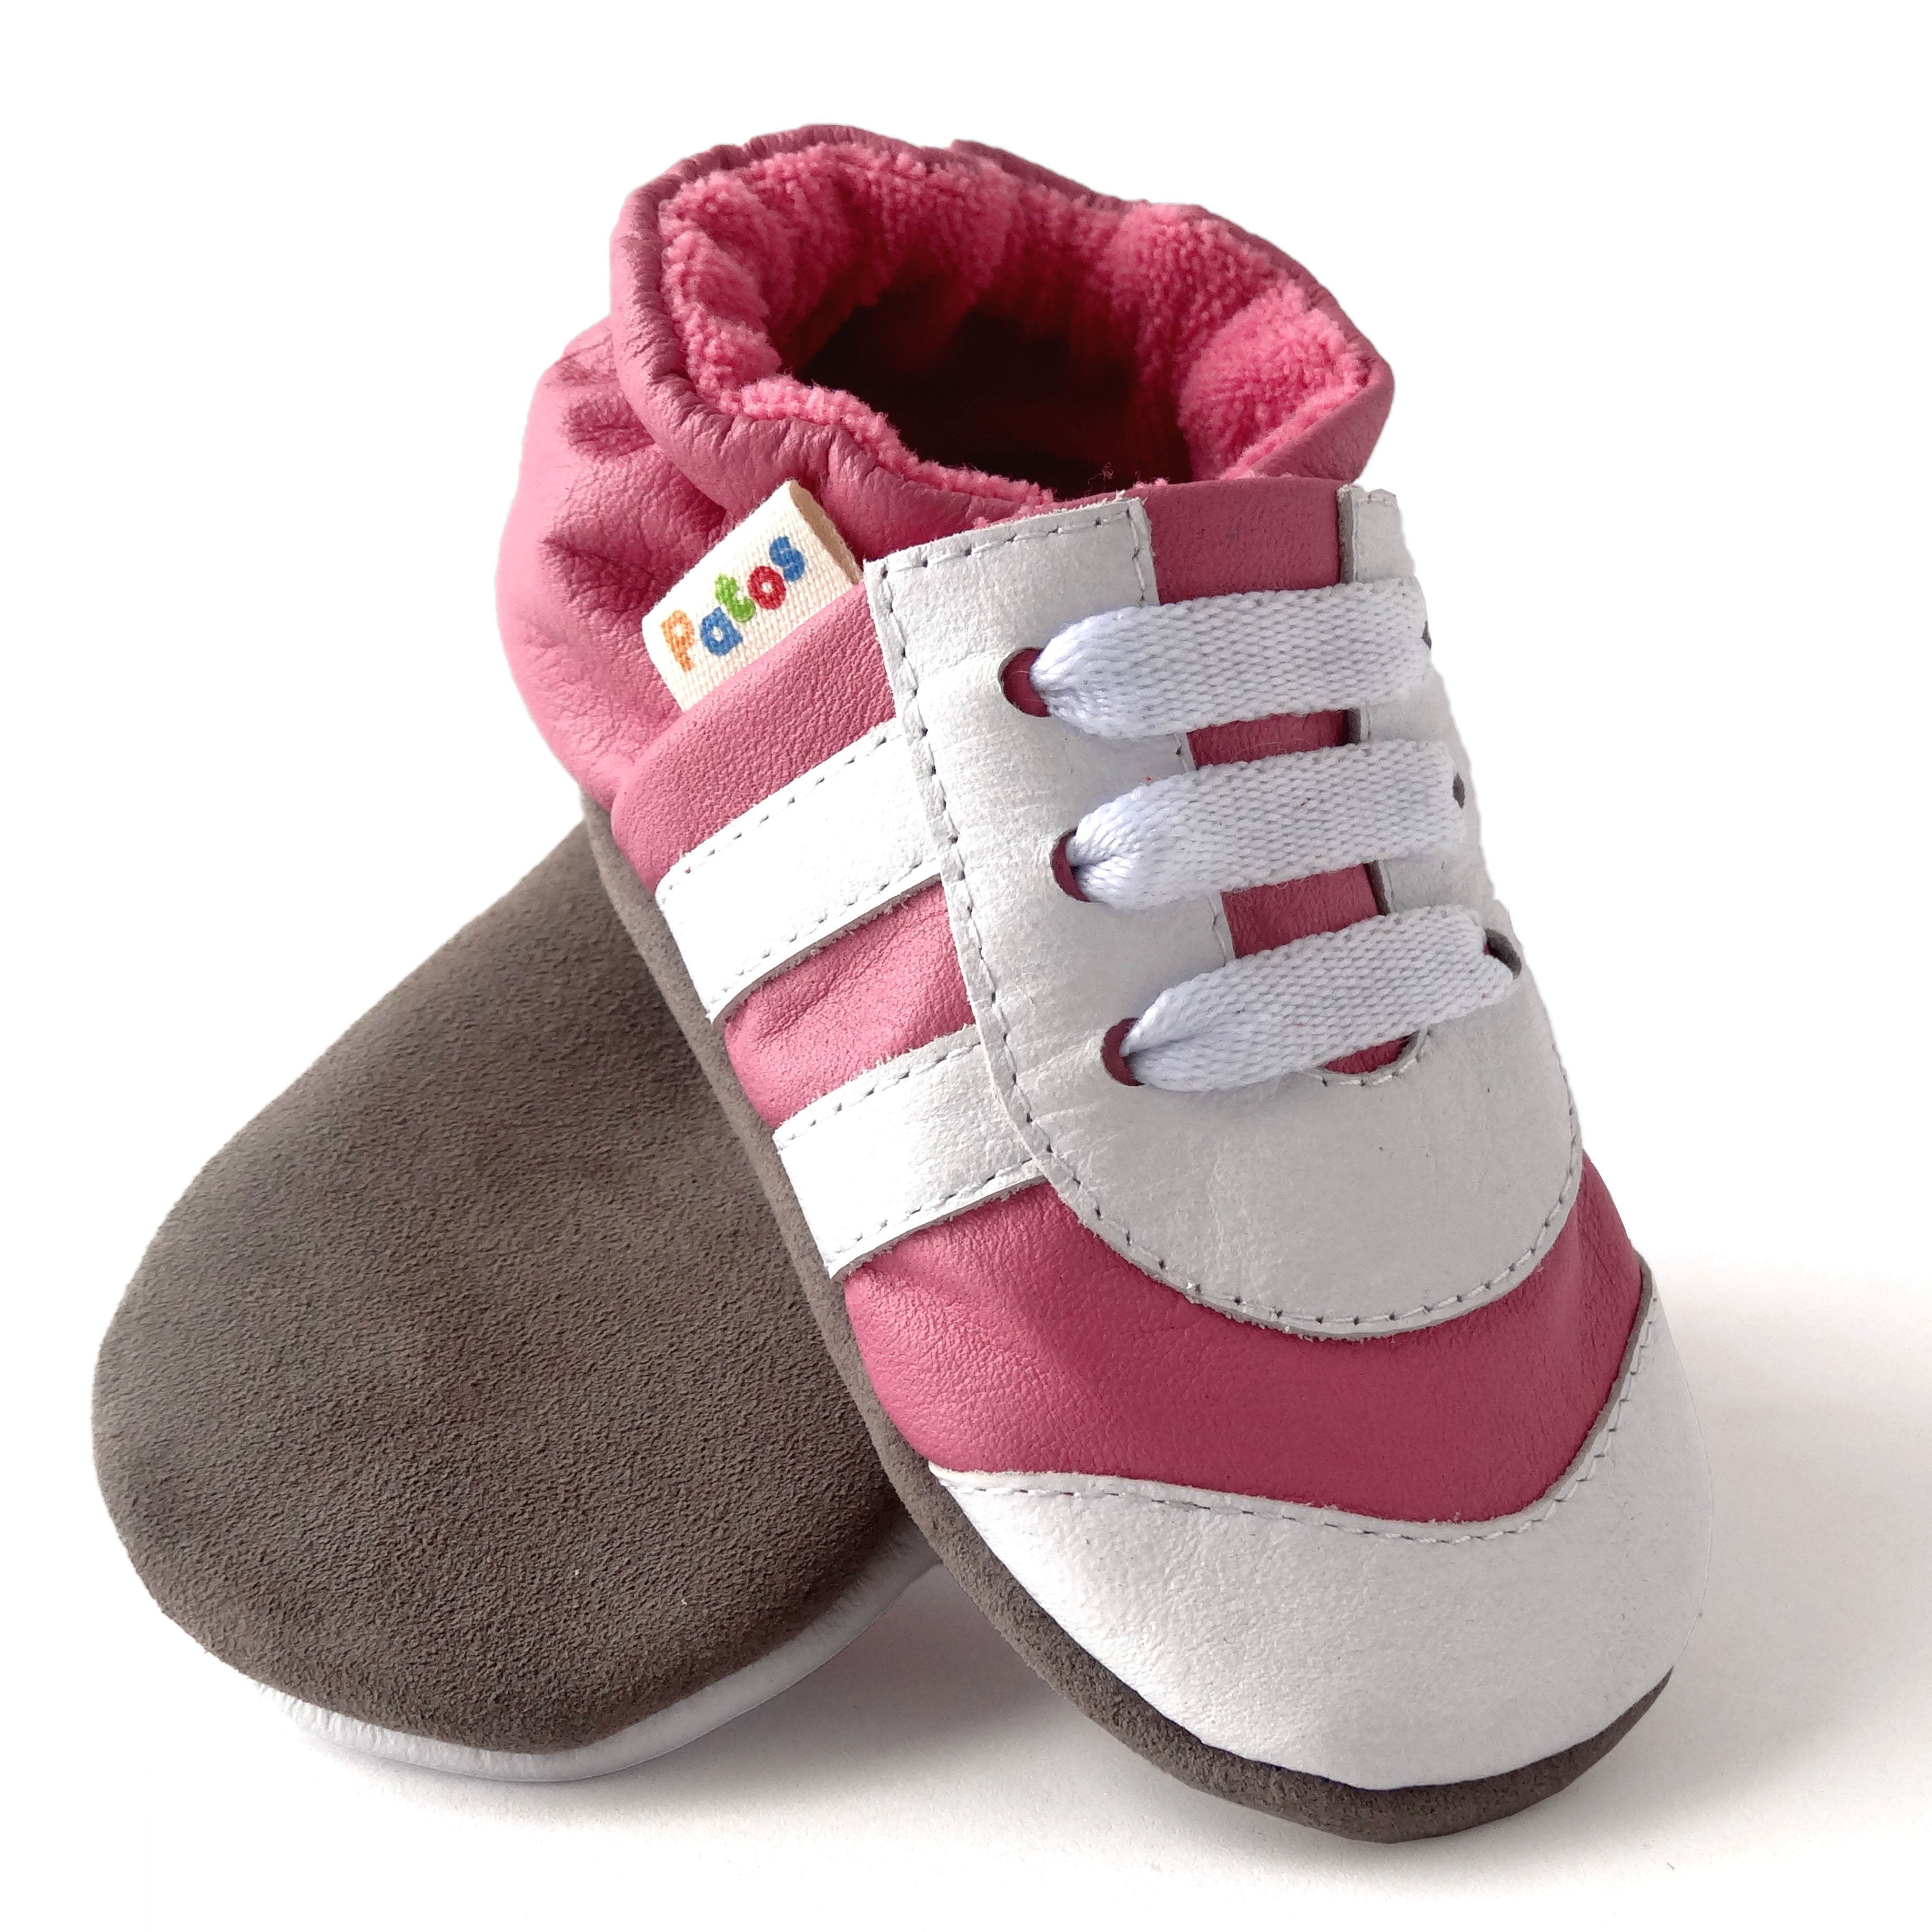 Baby tennis first walking shoes Patos Zapatos